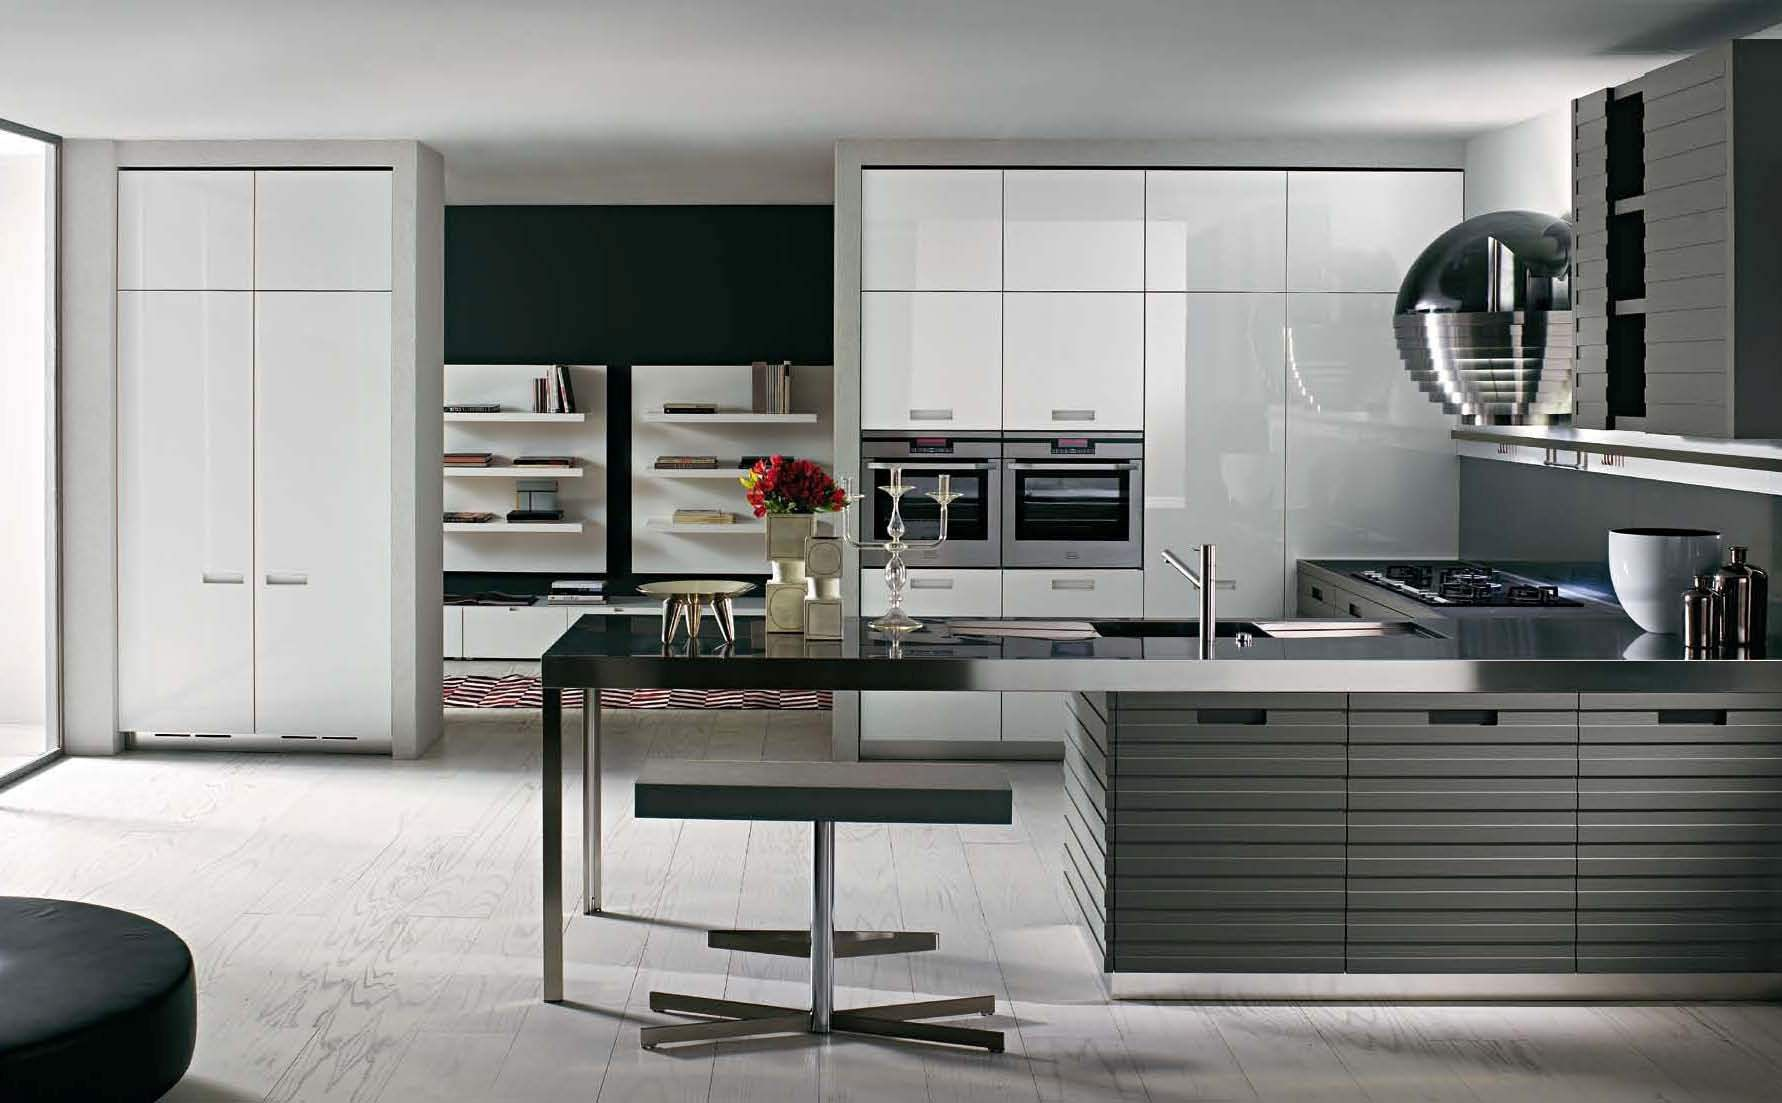 Kitchen Kitchen Set Salvarani Cuisine Luxury Furniture Mr